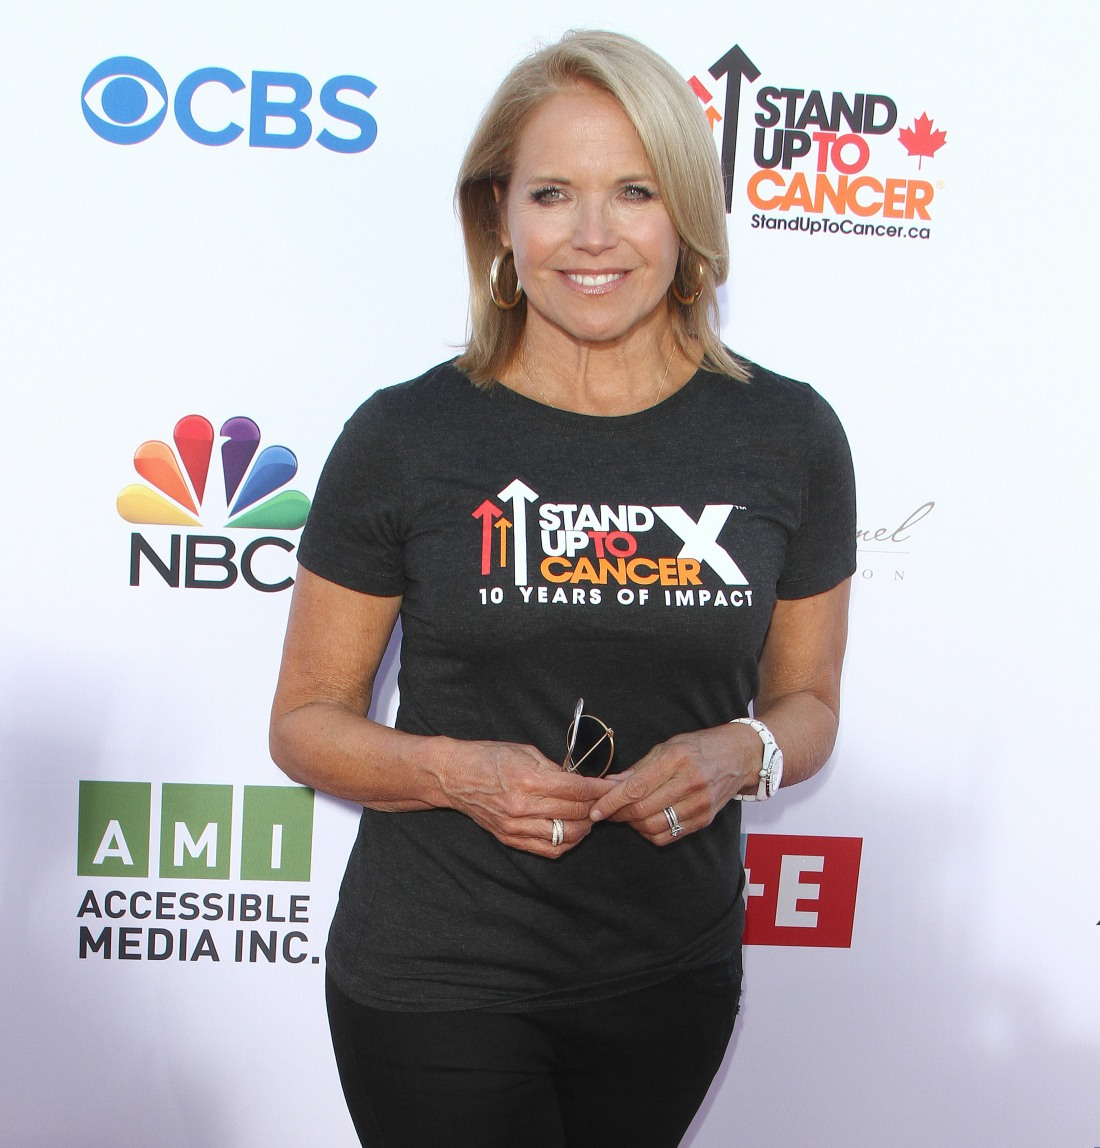 Katie Couric at the sixth biennial Stand Up To Cancer (SU2C) telecast at the Barker Hangar in Santa Monica